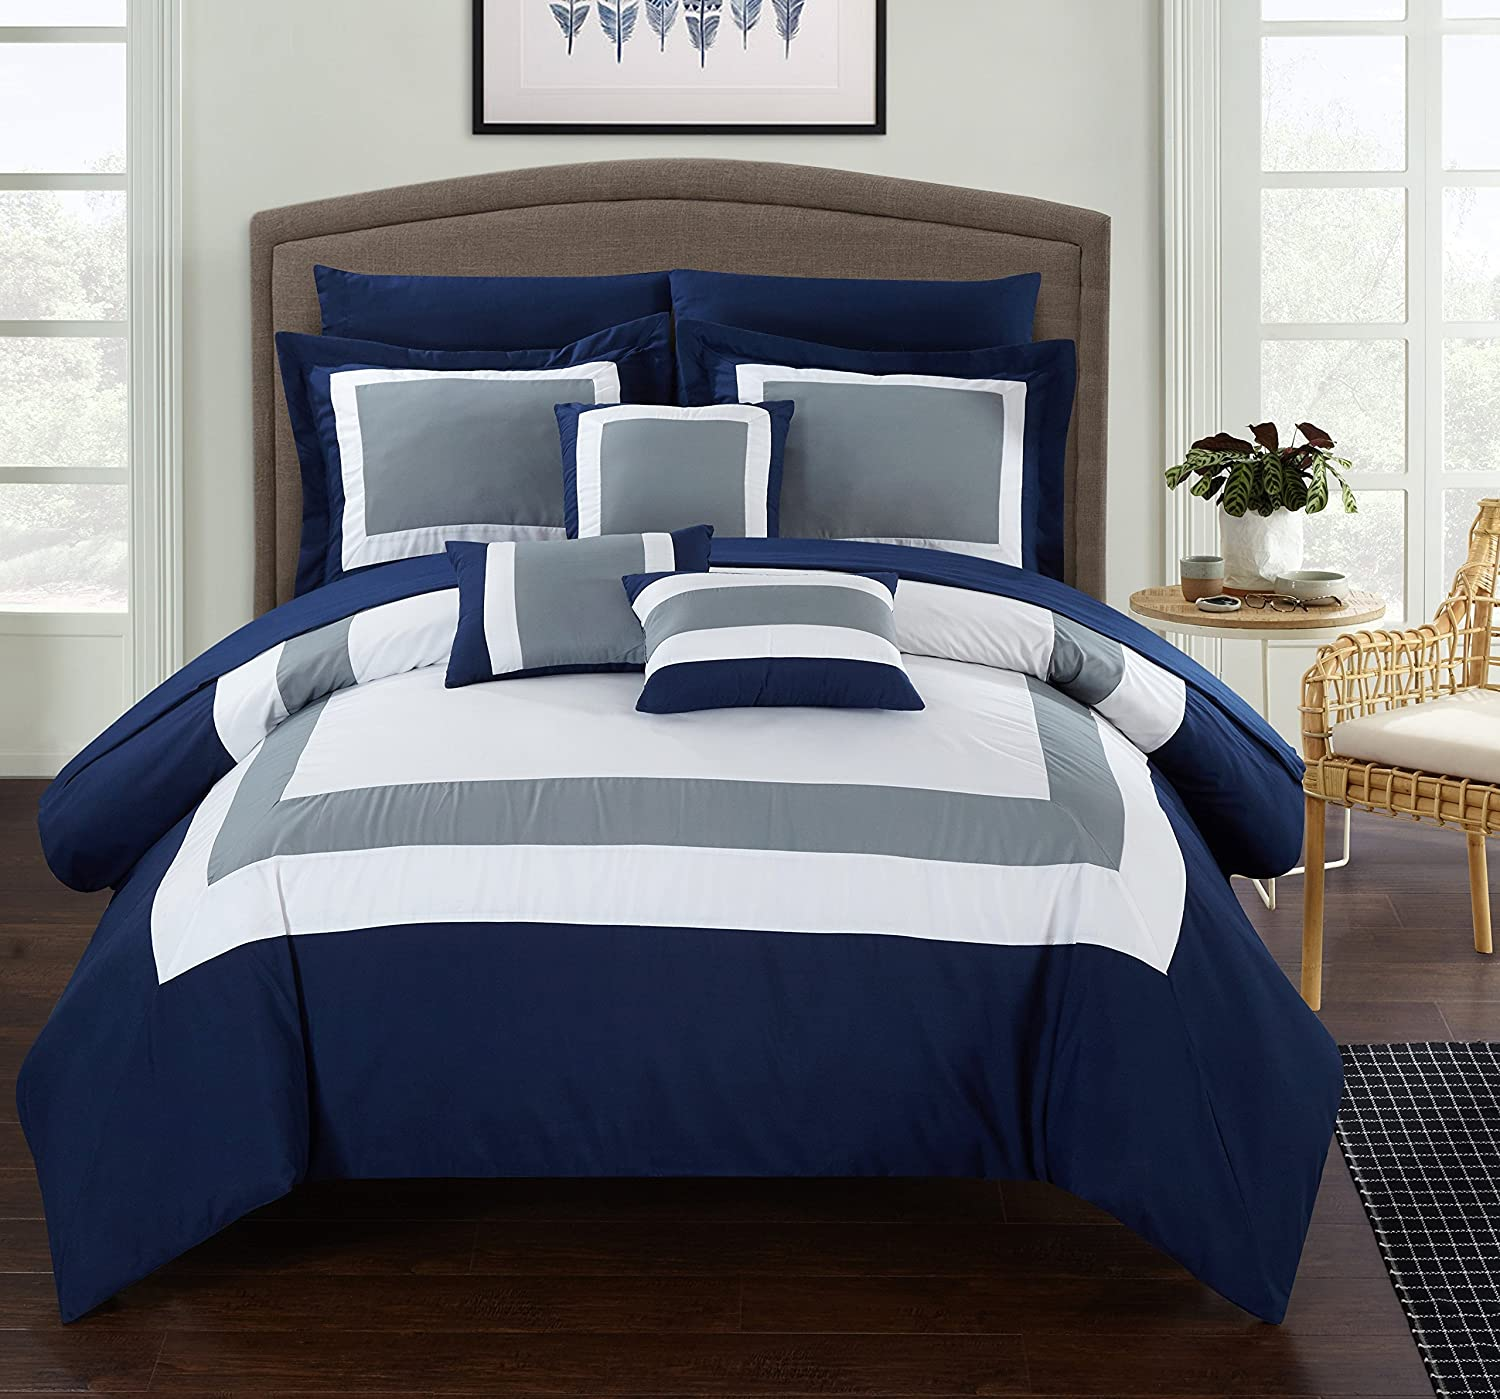 Chic Home 10 Piece Lord Patchwork Color Block Complete Queen Bed in a Bag Comforter Set Navy Sheets Included